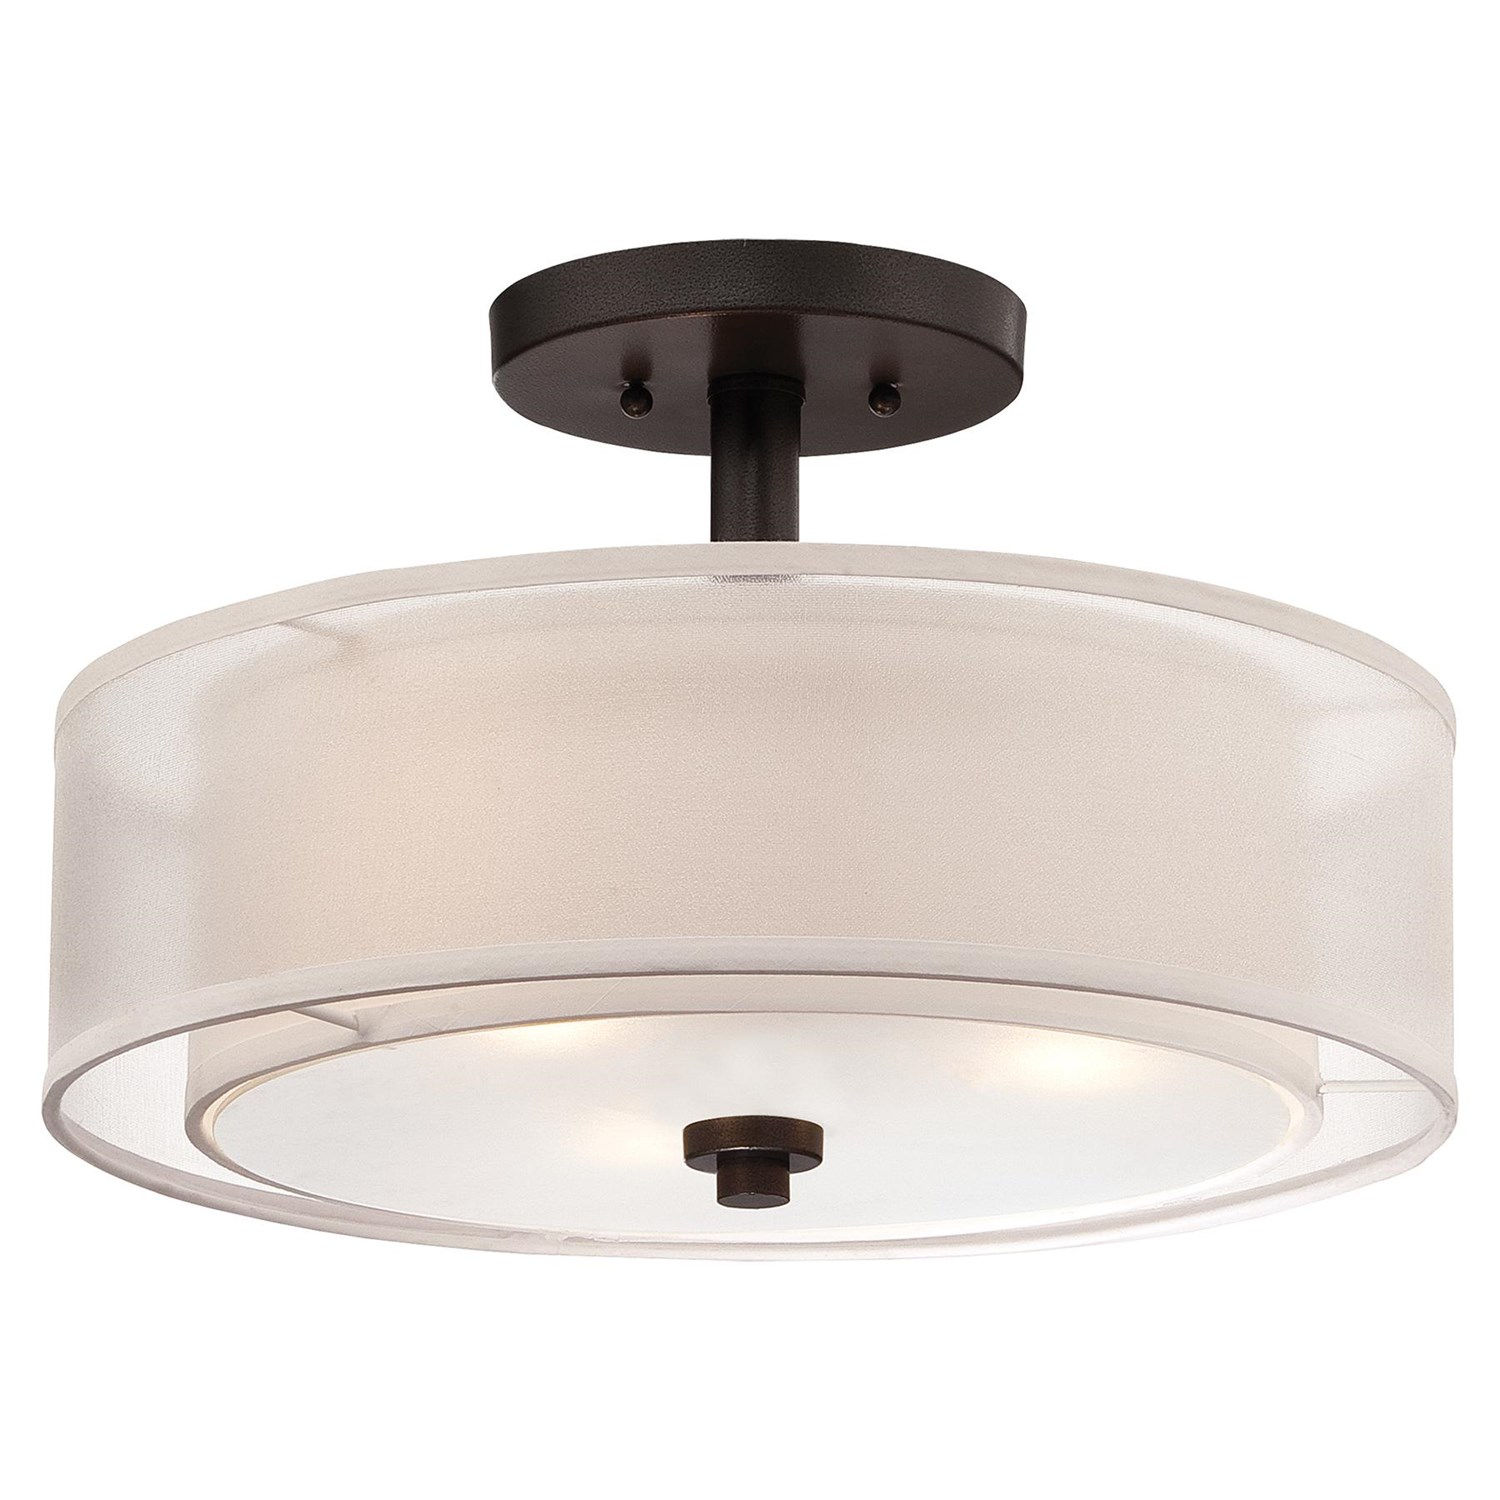 Creative semi flush ceiling light for home lighting design with brushed nickel semi flush ceiling light